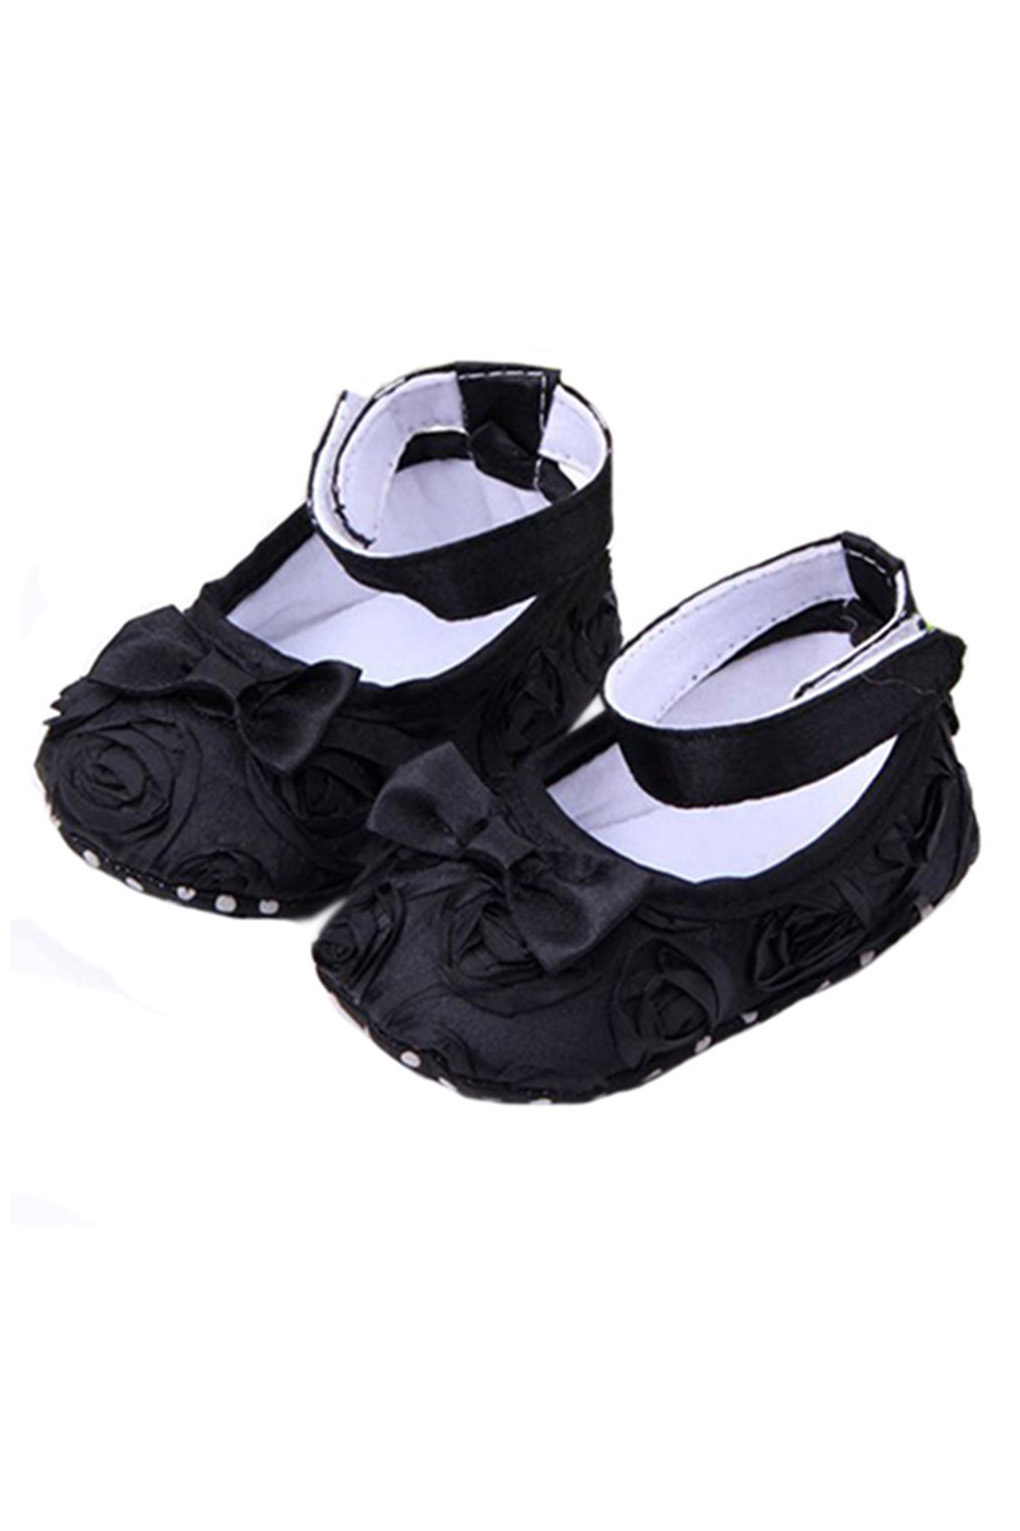 KEOL Best Sale Baby Girl Comfortable AntiSlip Princess Toddler Shoes (0-6 month, Black)